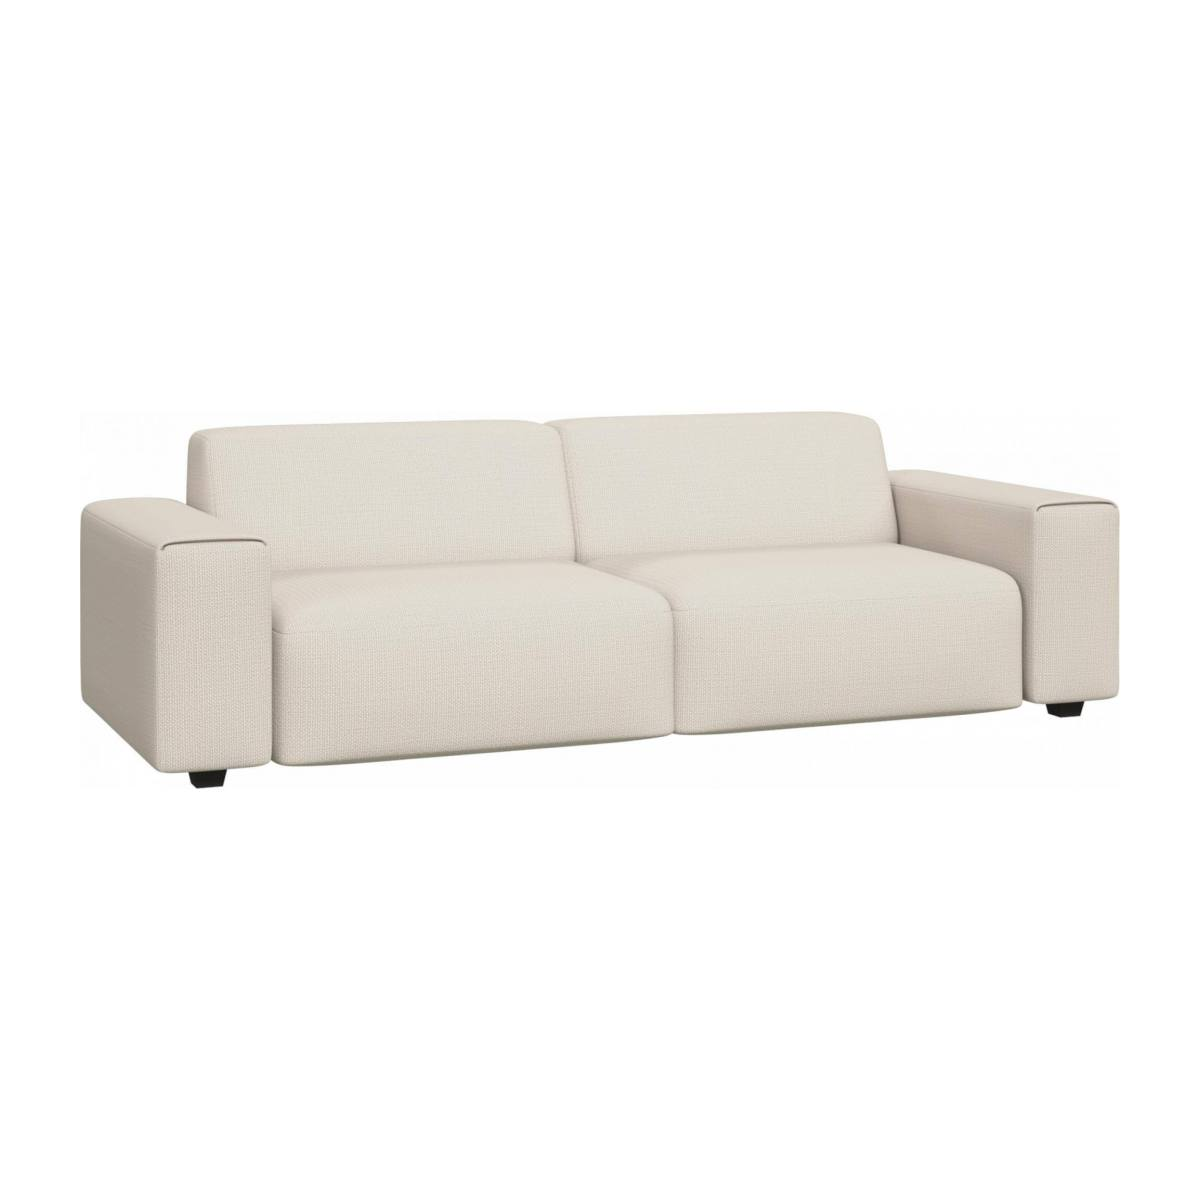 4 seater sofa in Fasoli fabric, snow white n°2